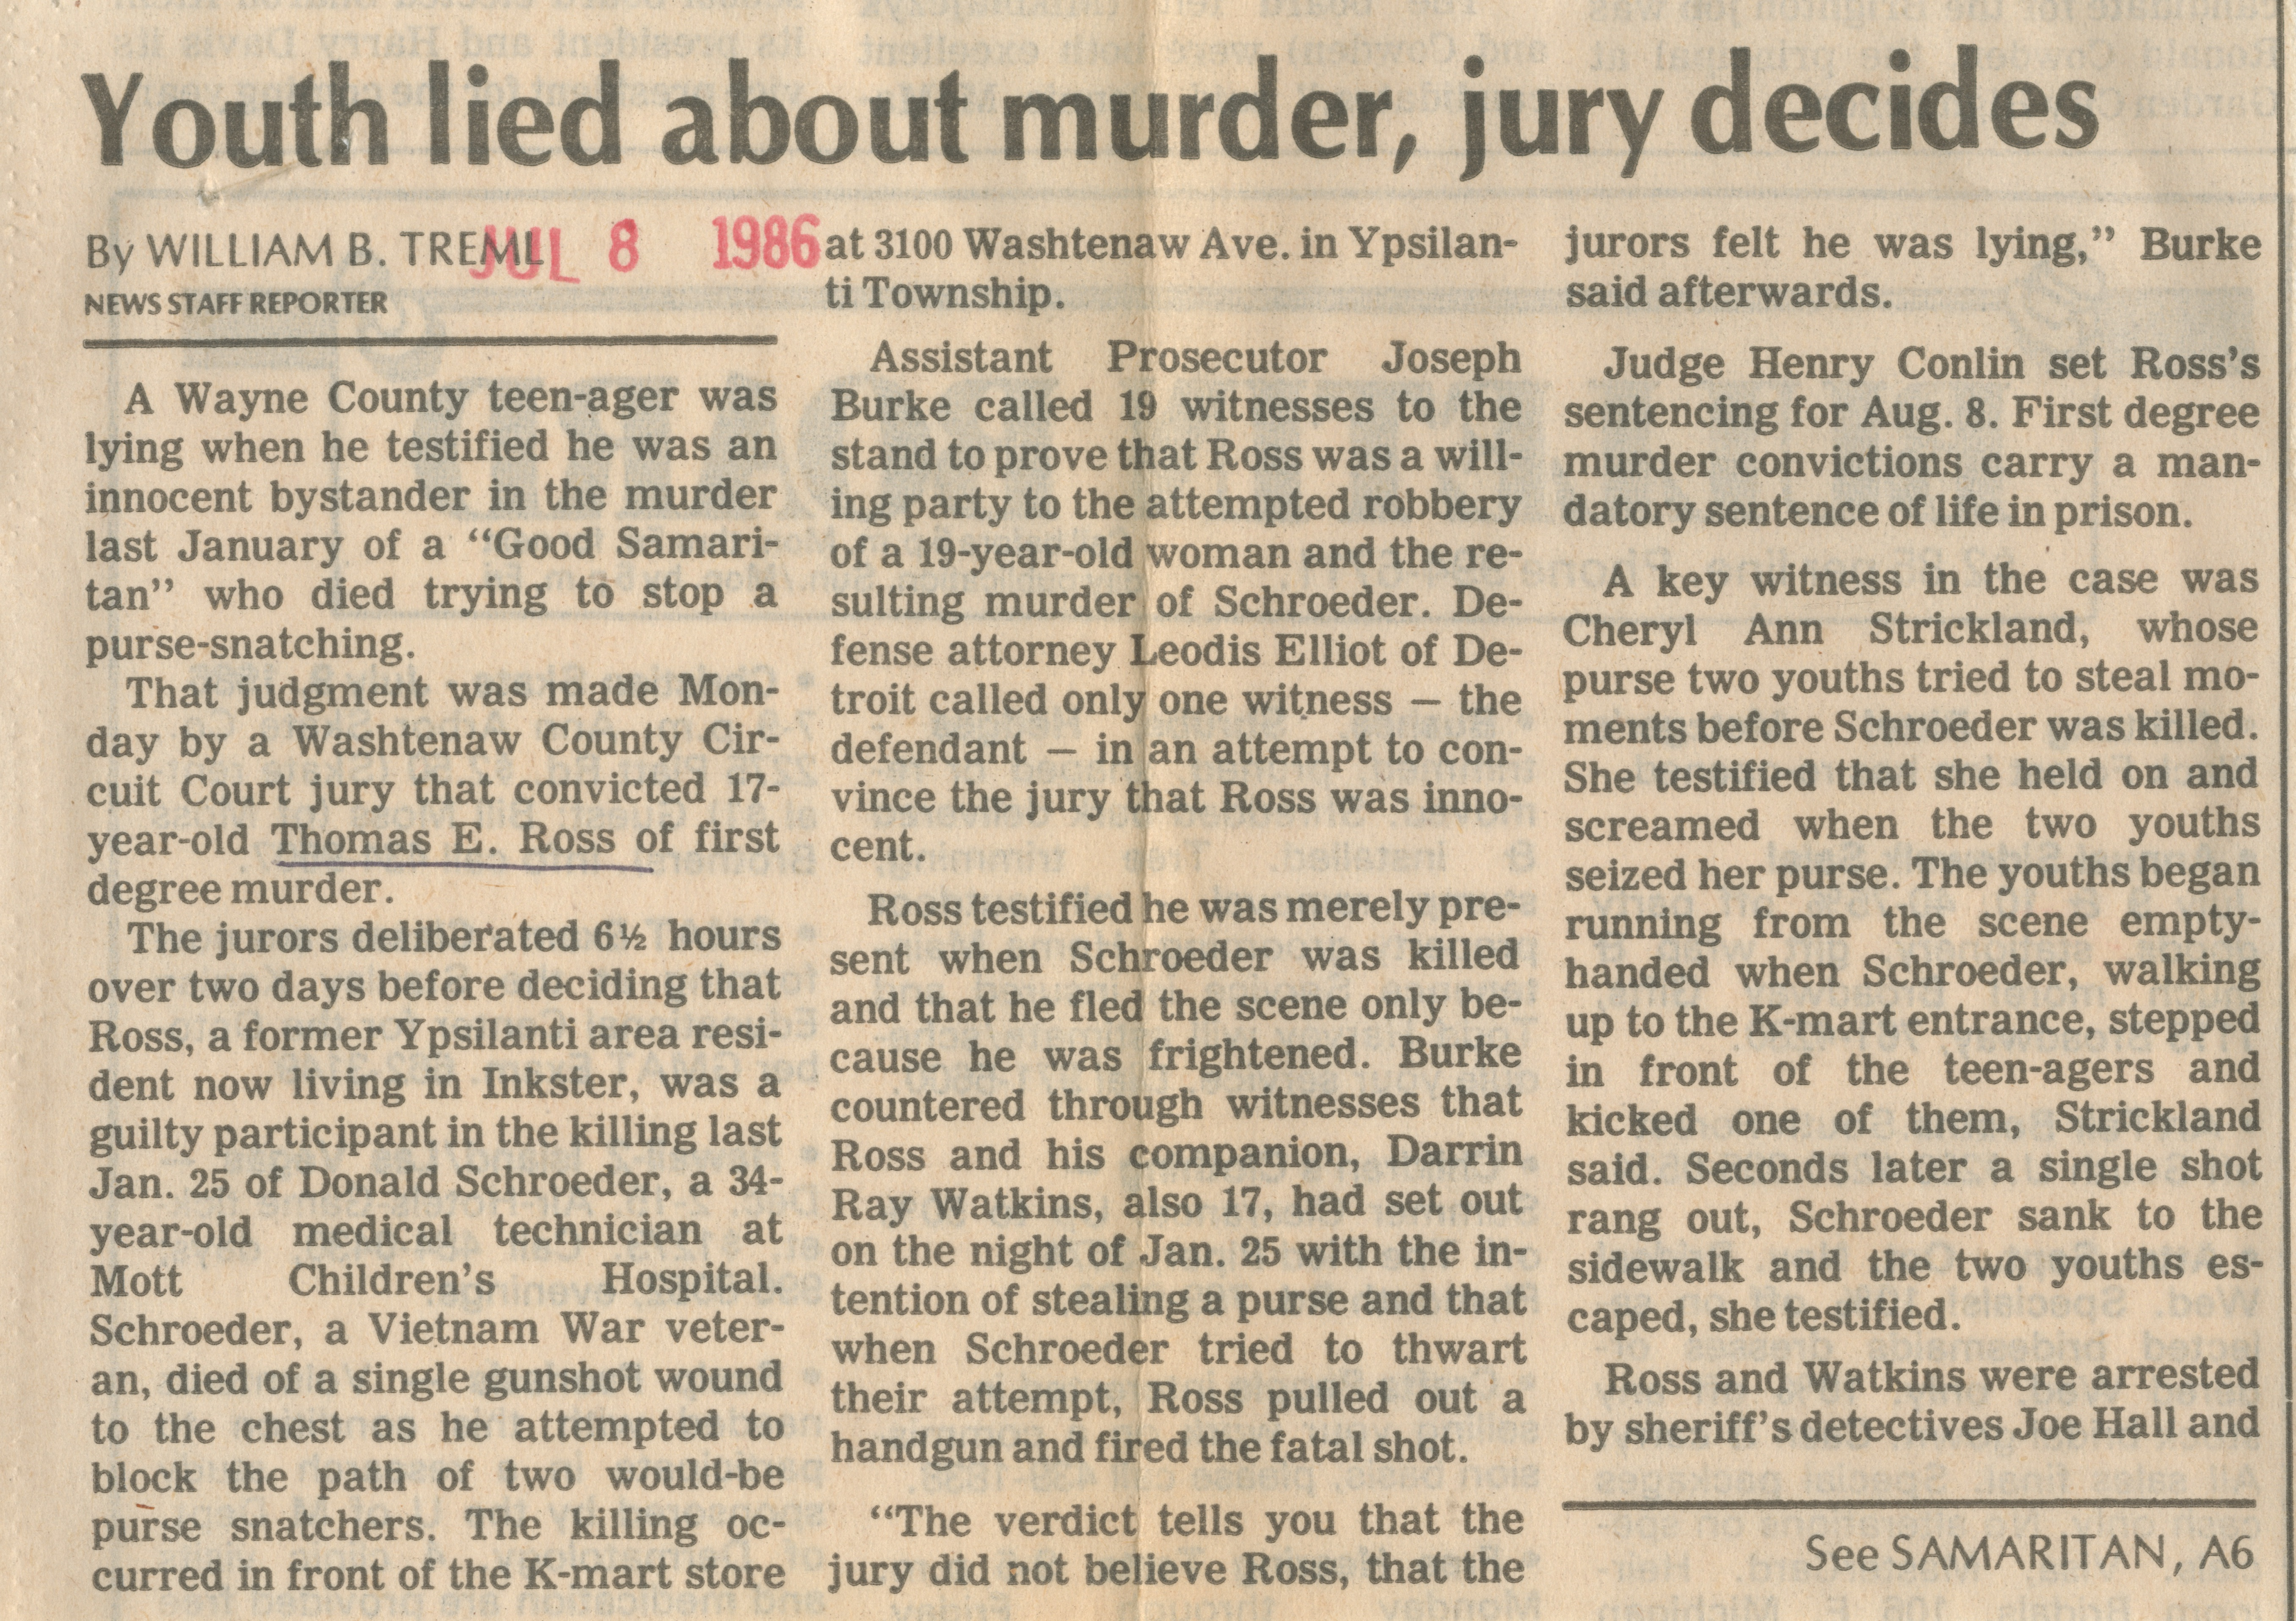 Youth lied about murder, jury decides image